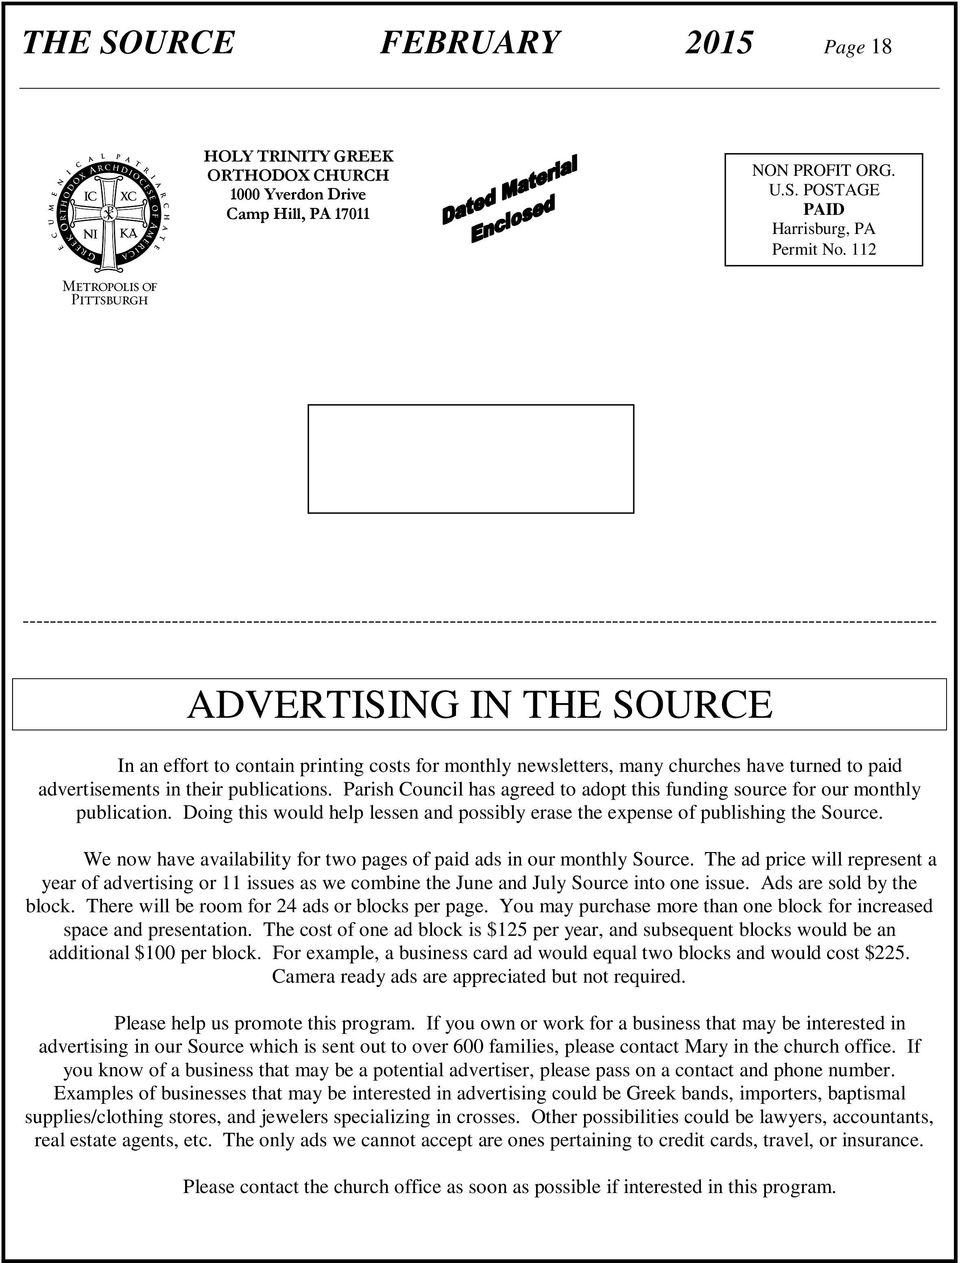 costs for monthly newsletters, many churches have turned to paid advertisements in their publications. Parish Council has agreed to adopt this funding source for our monthly publication.